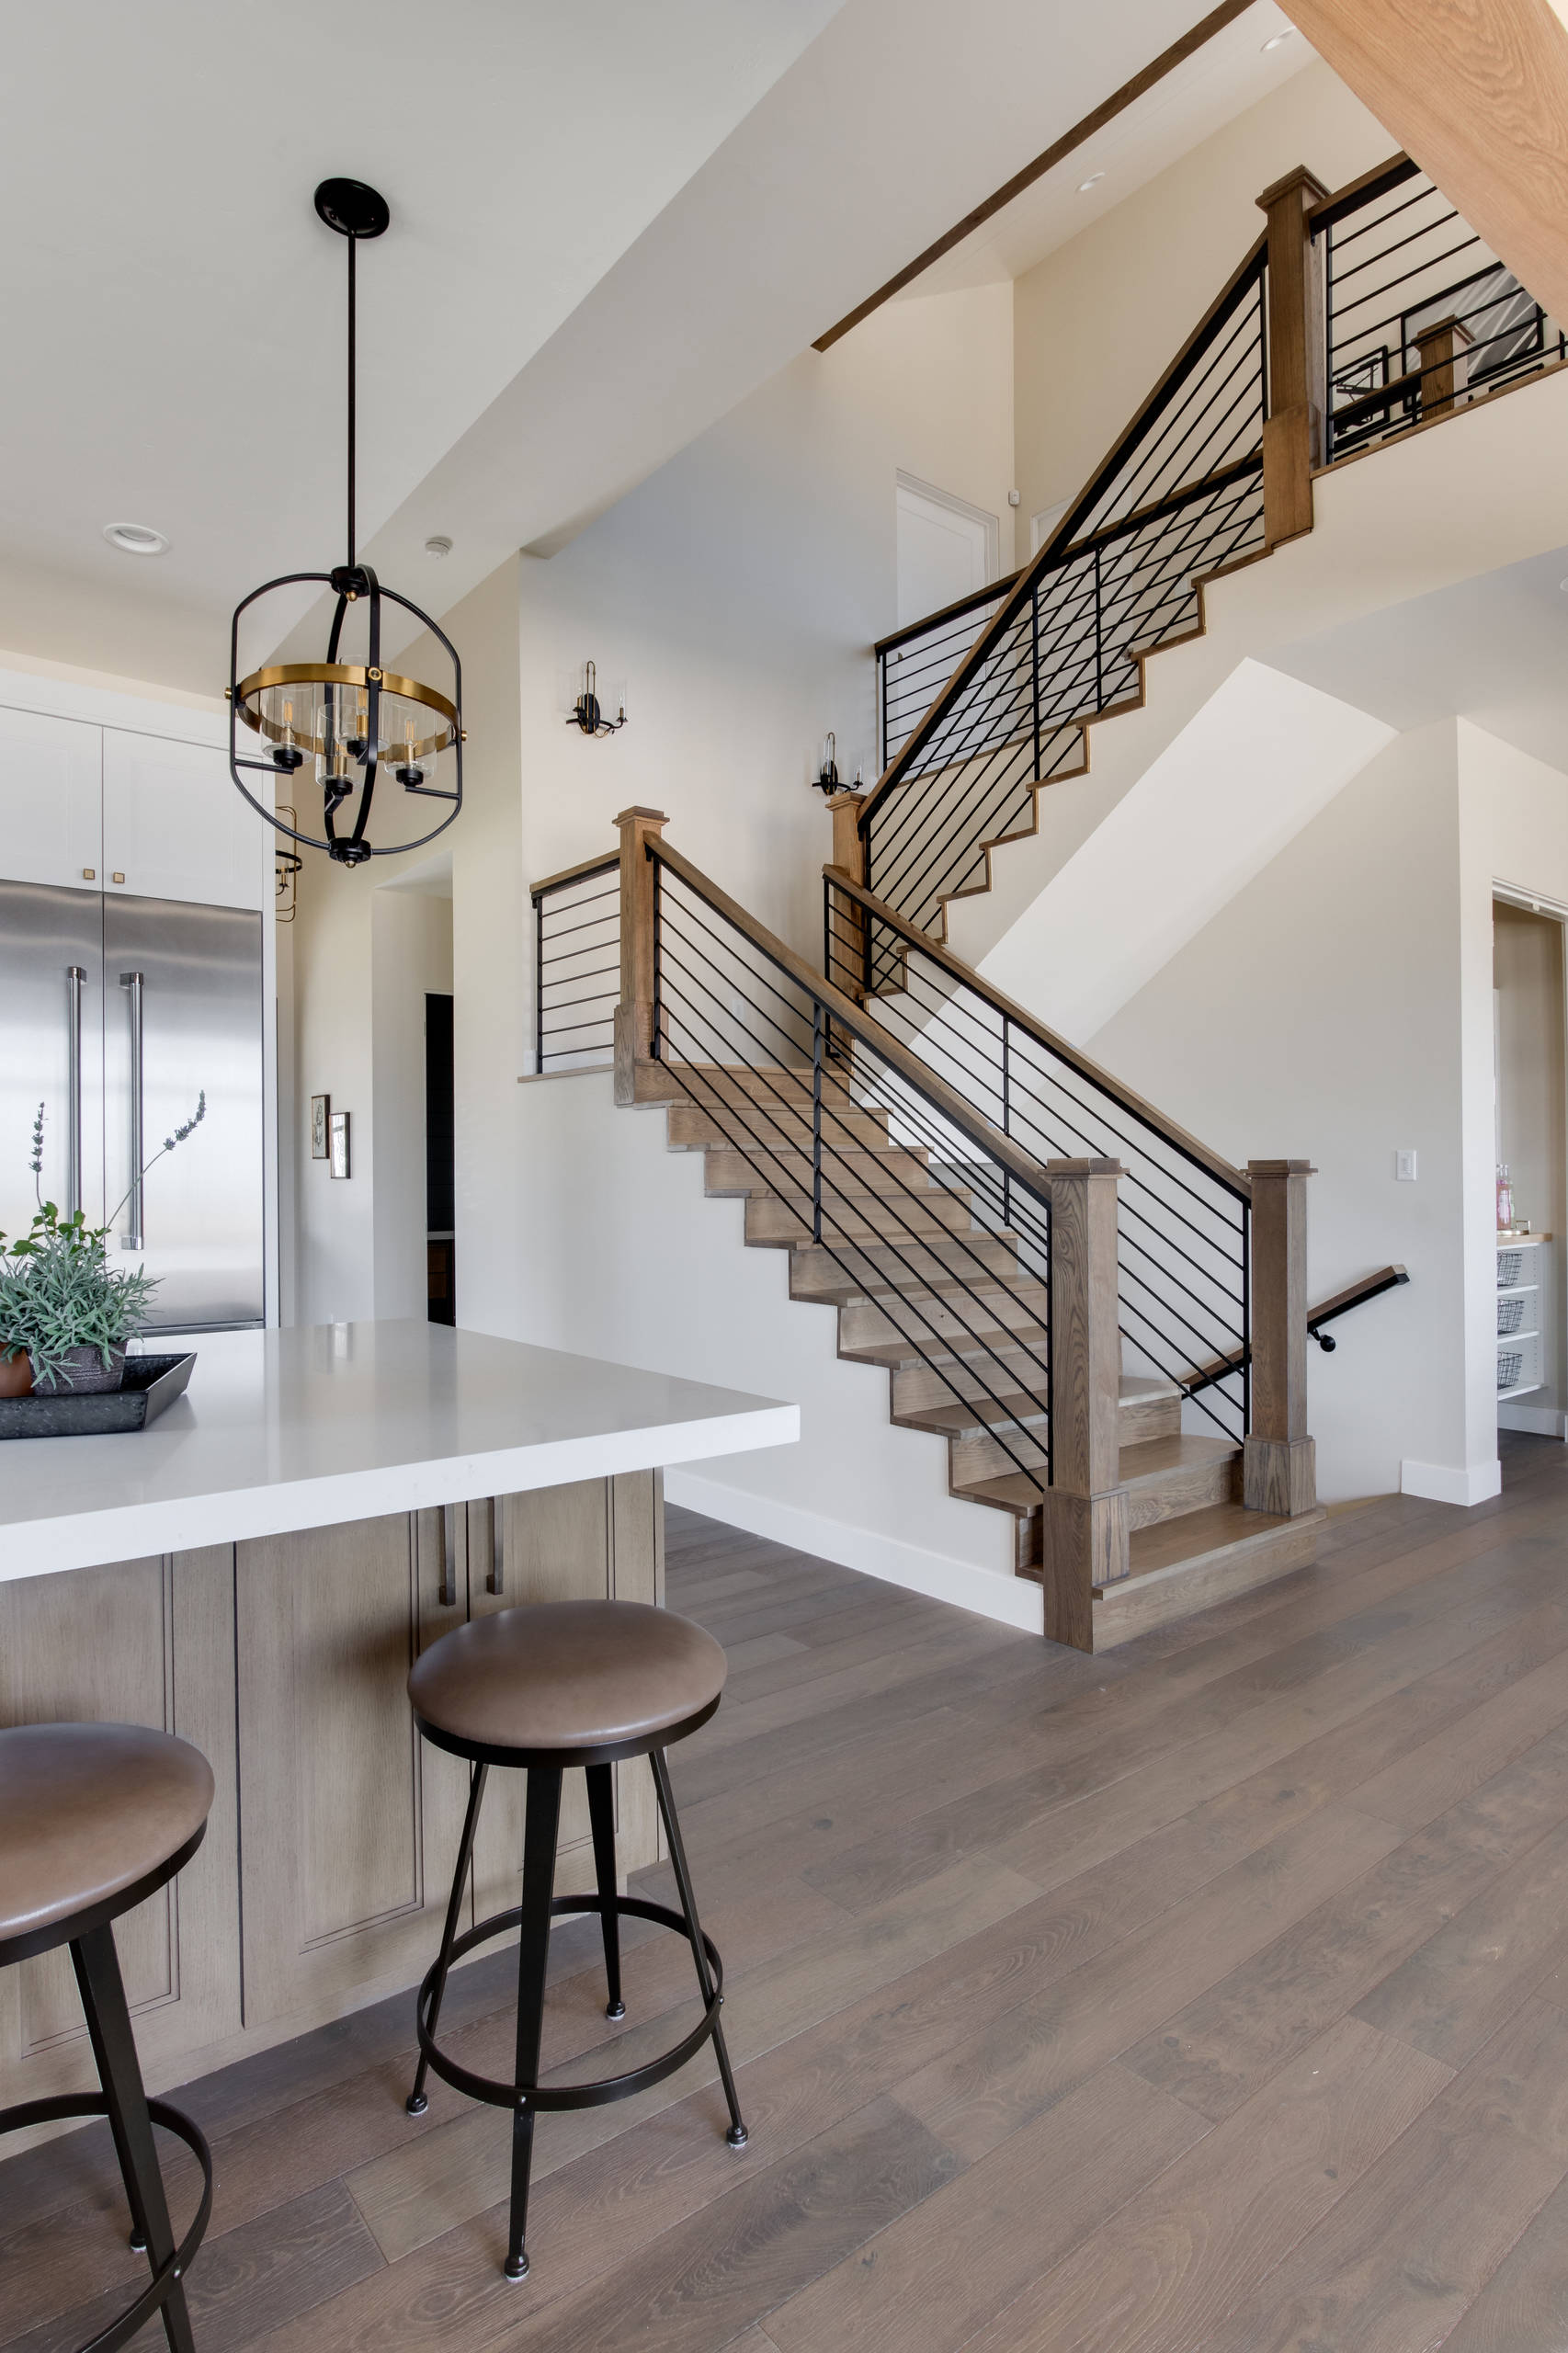 25 Beautiful Staircase Pictures & Ideas - September, 25  Houzz